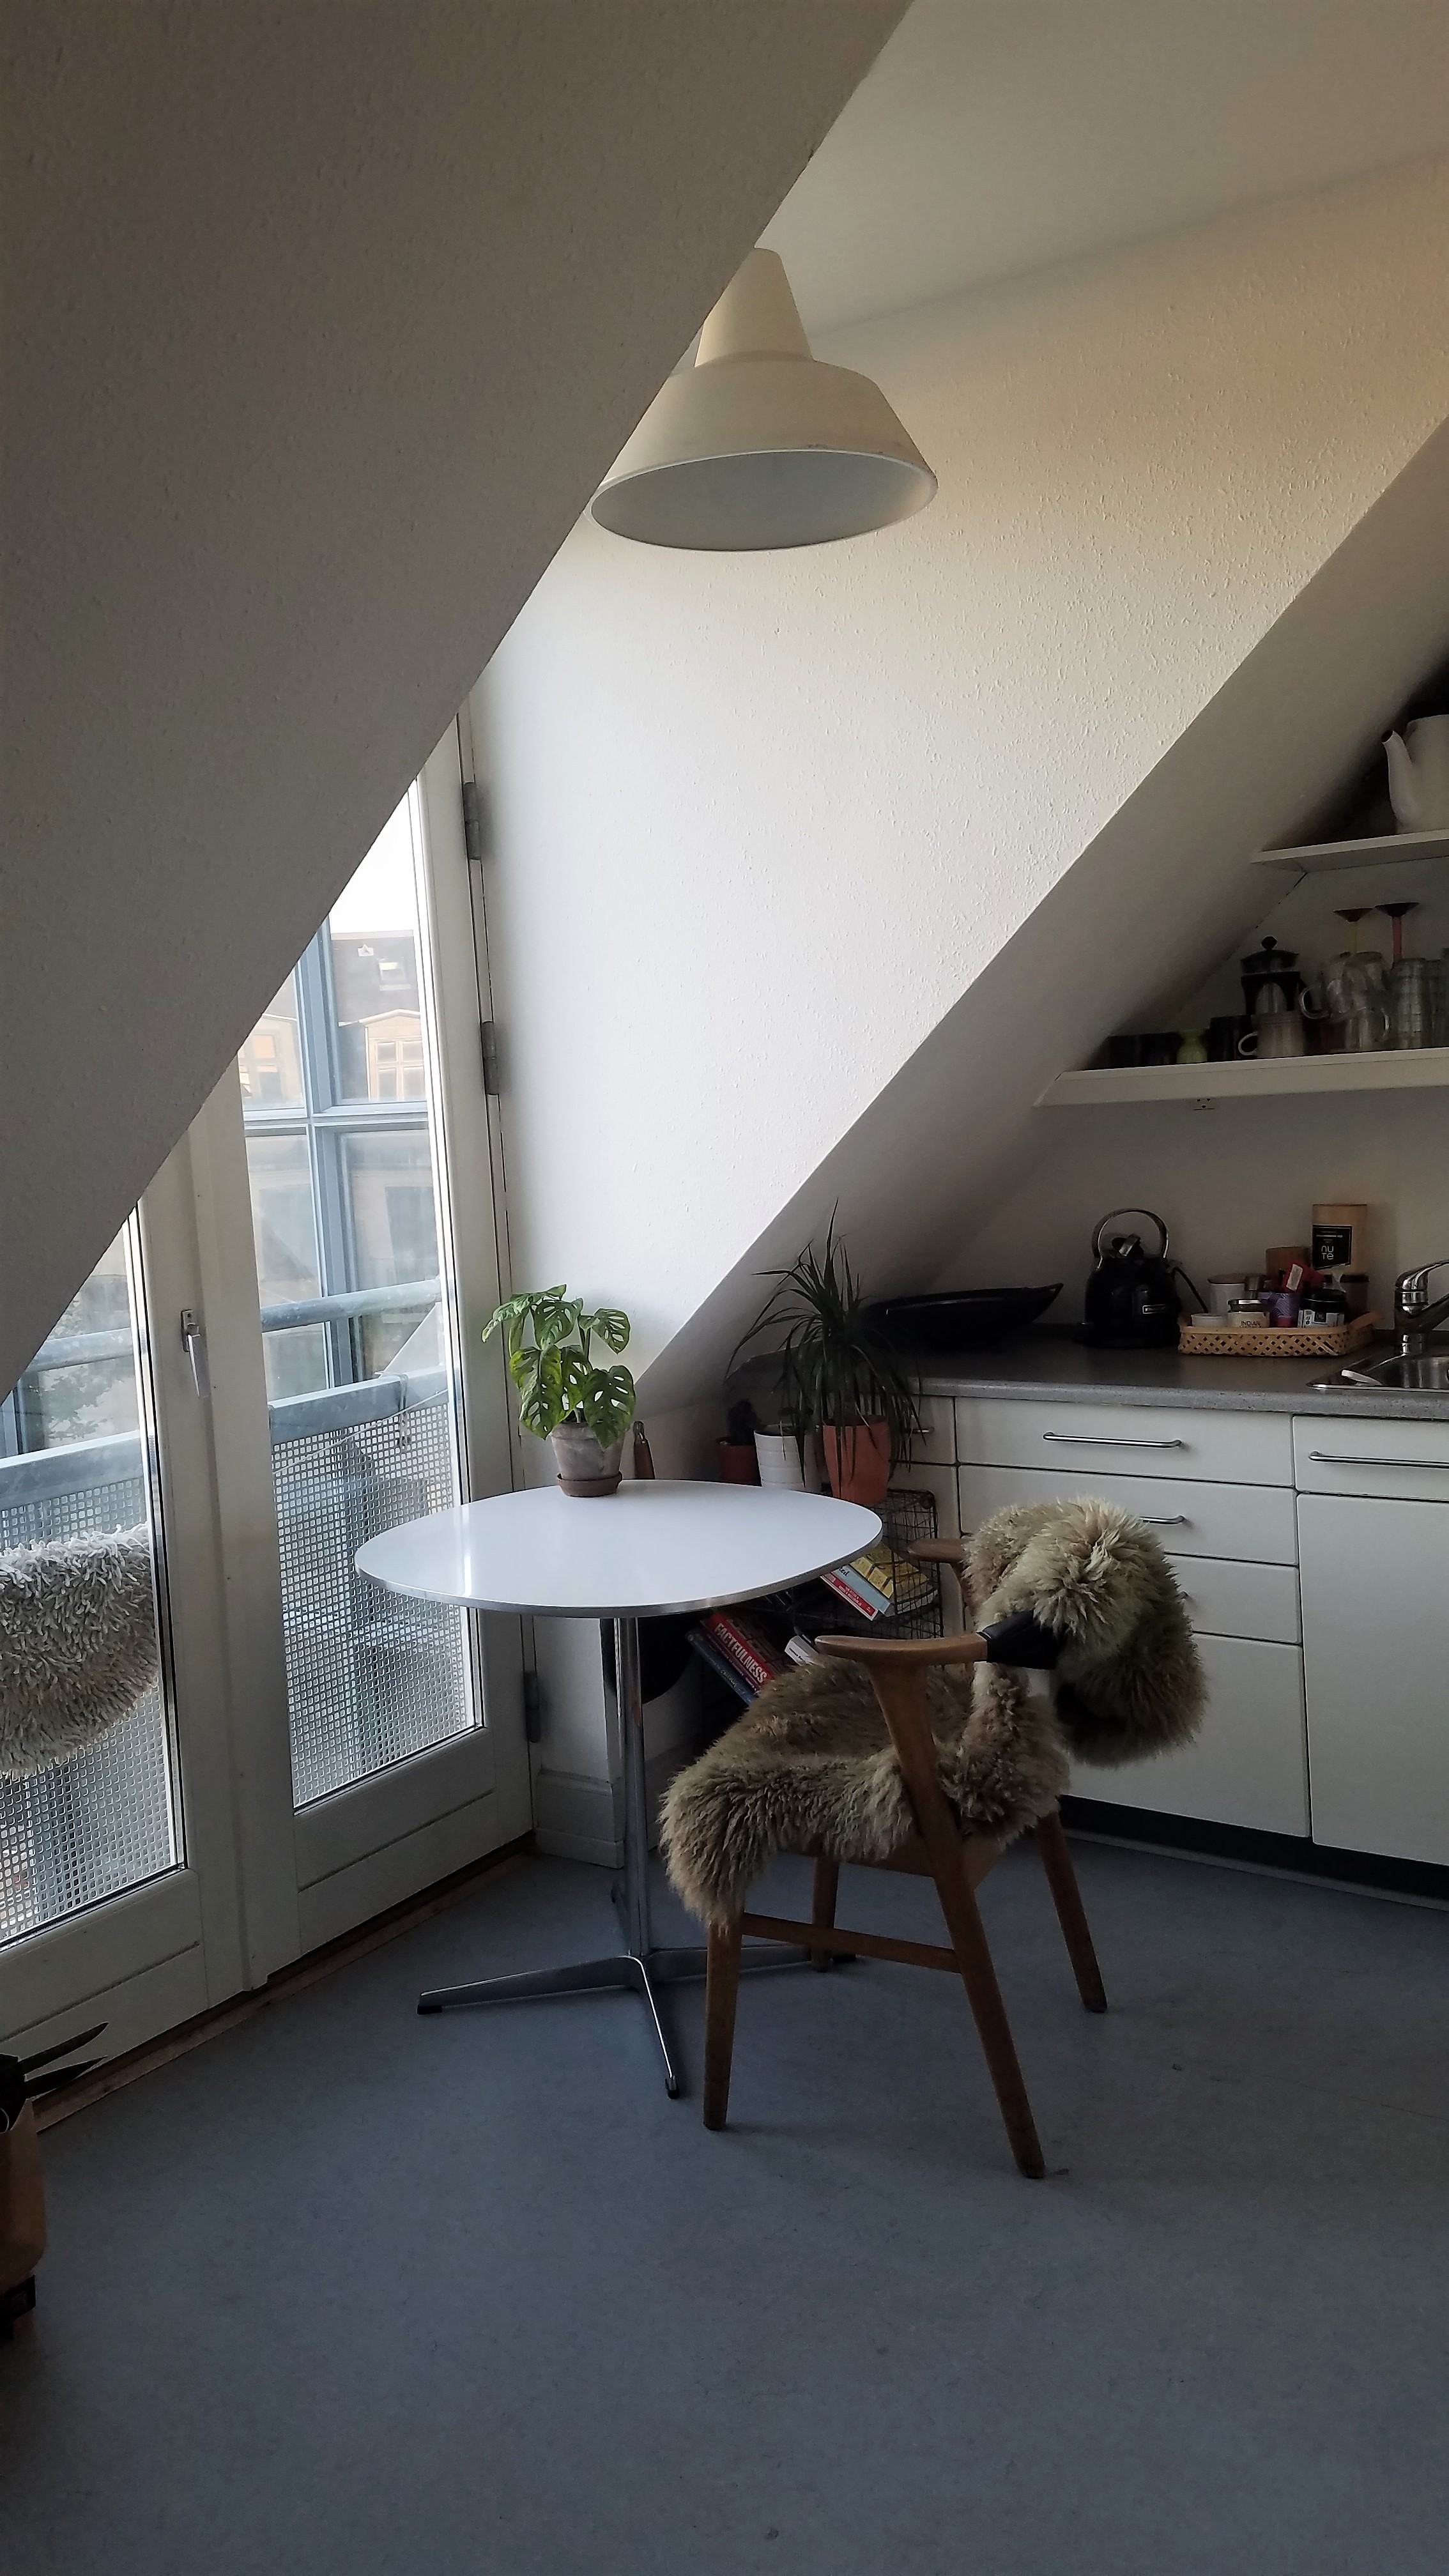 copenhagen travel guide   stay in an airbnb, do a free walking tour